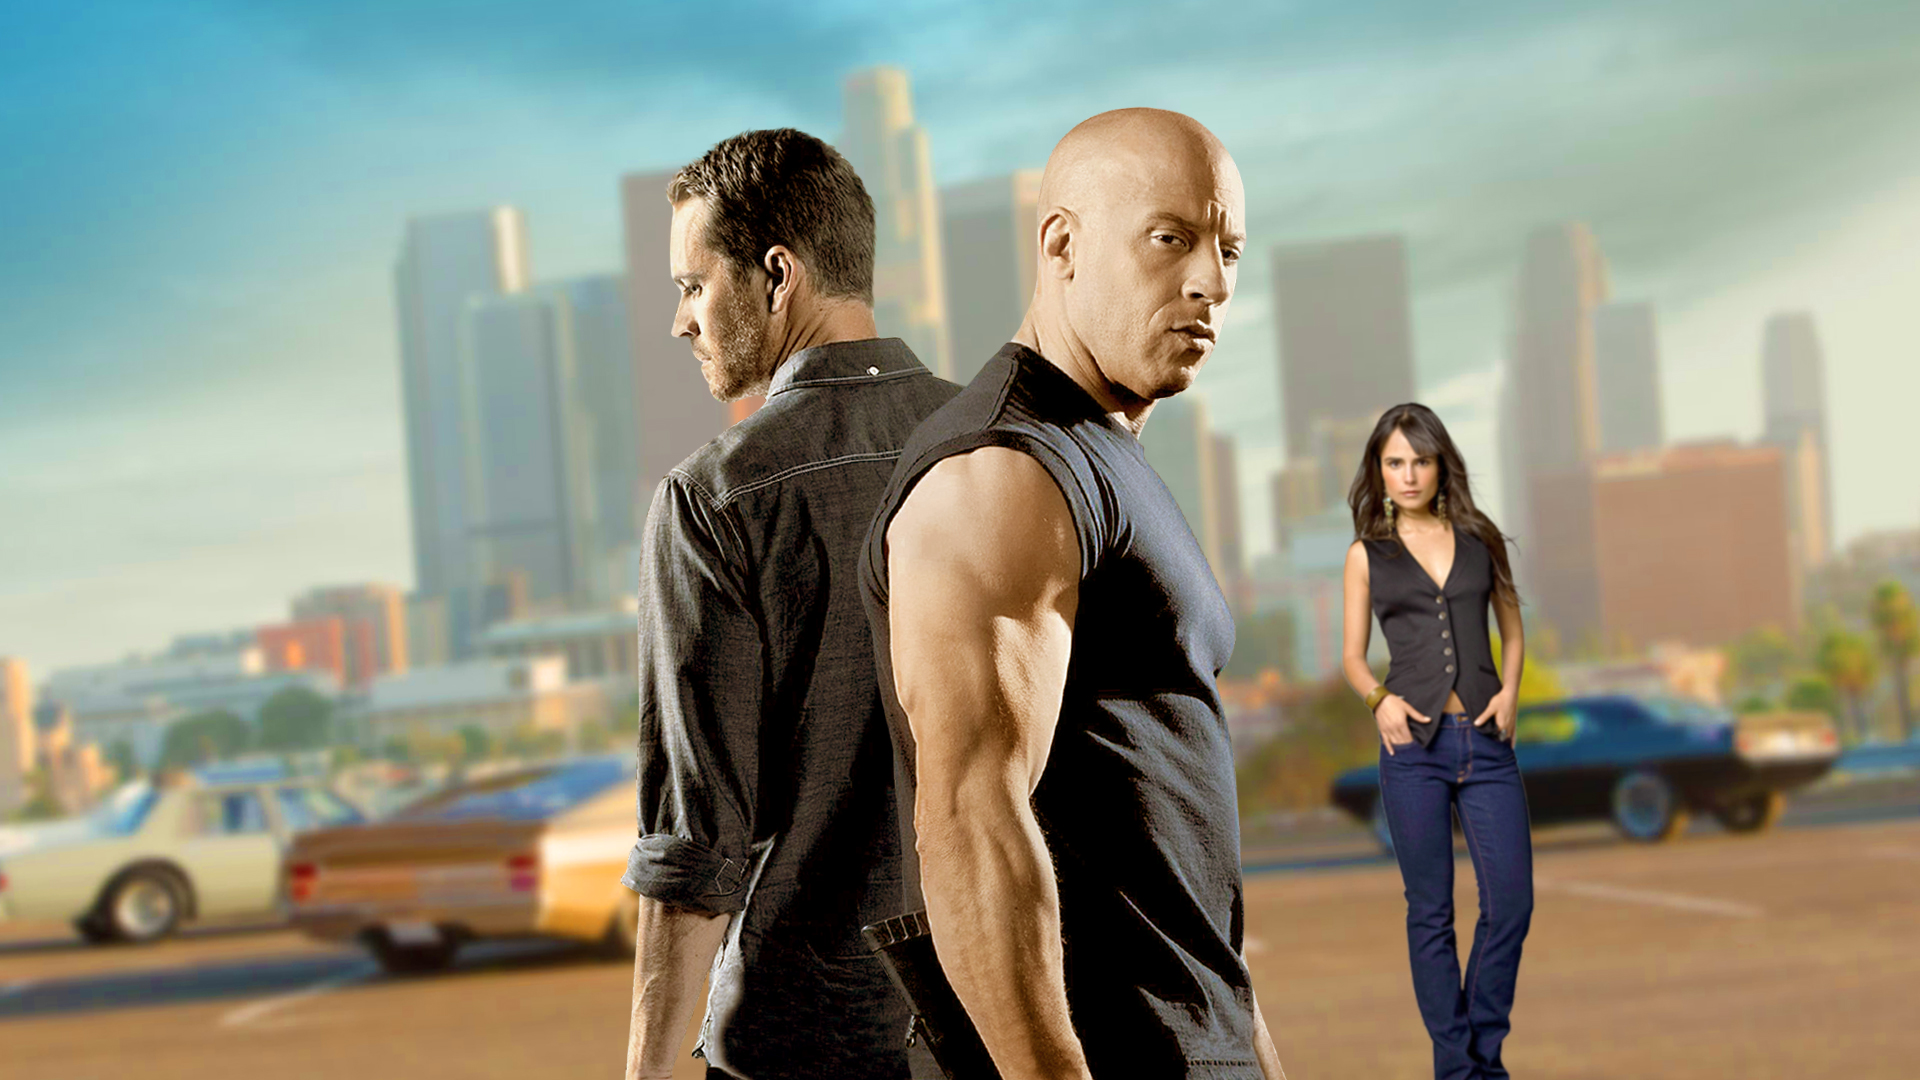 Fast And Furious 7 Wallpaper: Fast Furious Wallpaper 1920x1080 By Sachso74 On DeviantArt